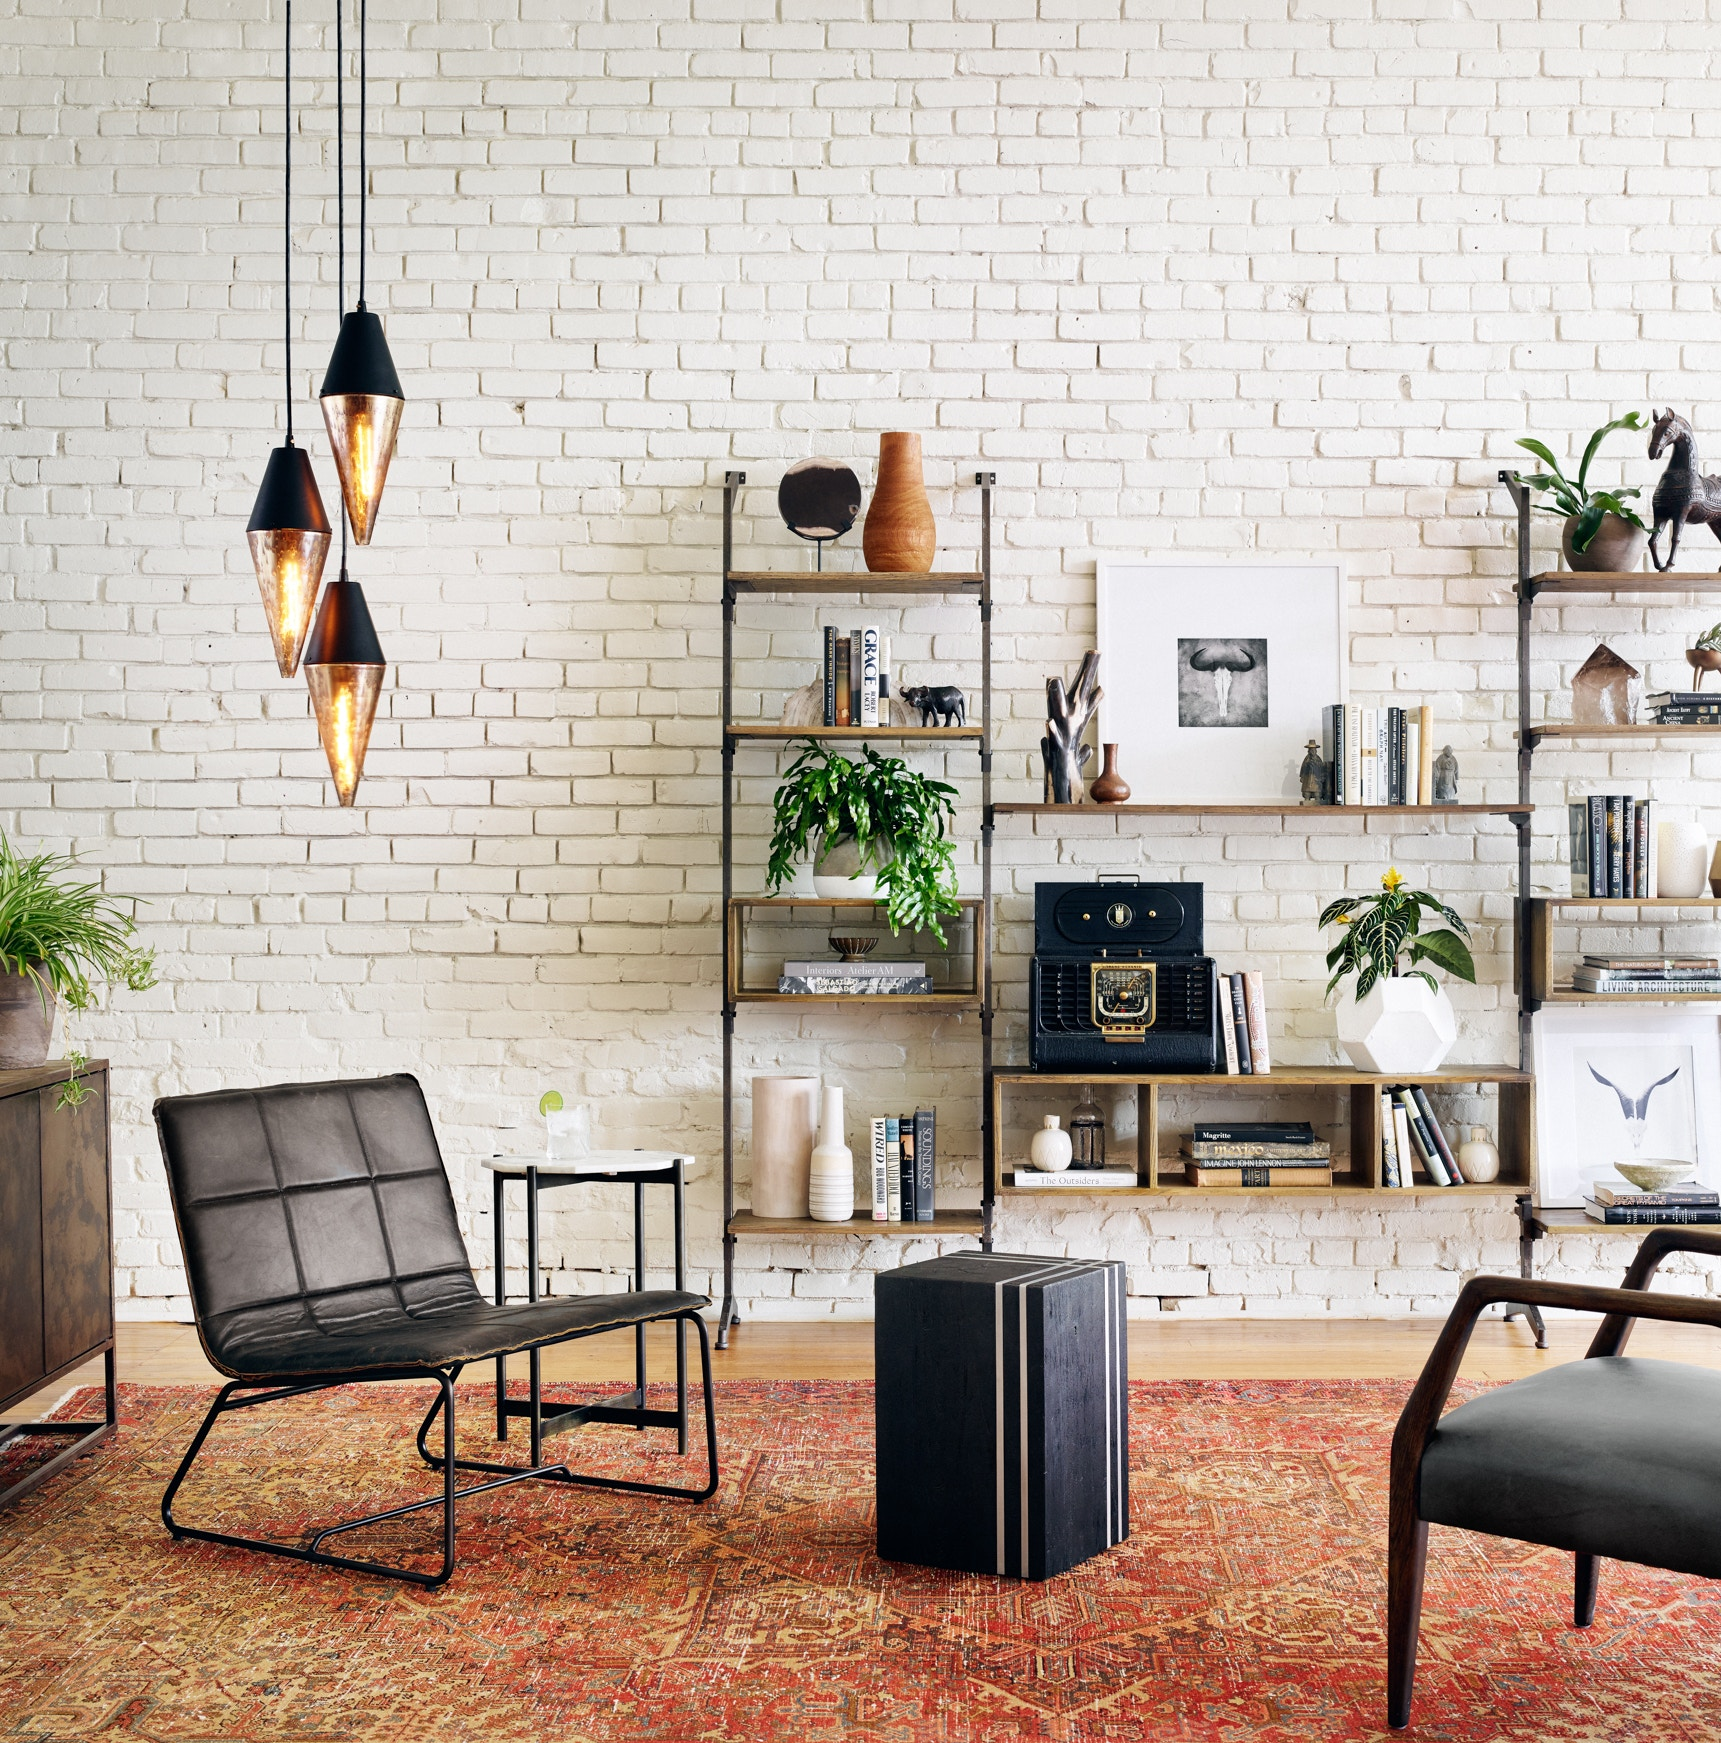 black singles in irondale A single one particular top if you utilize the home associated with irondale brooks lounge chair, black wash weathered as being a coffee table within the living.